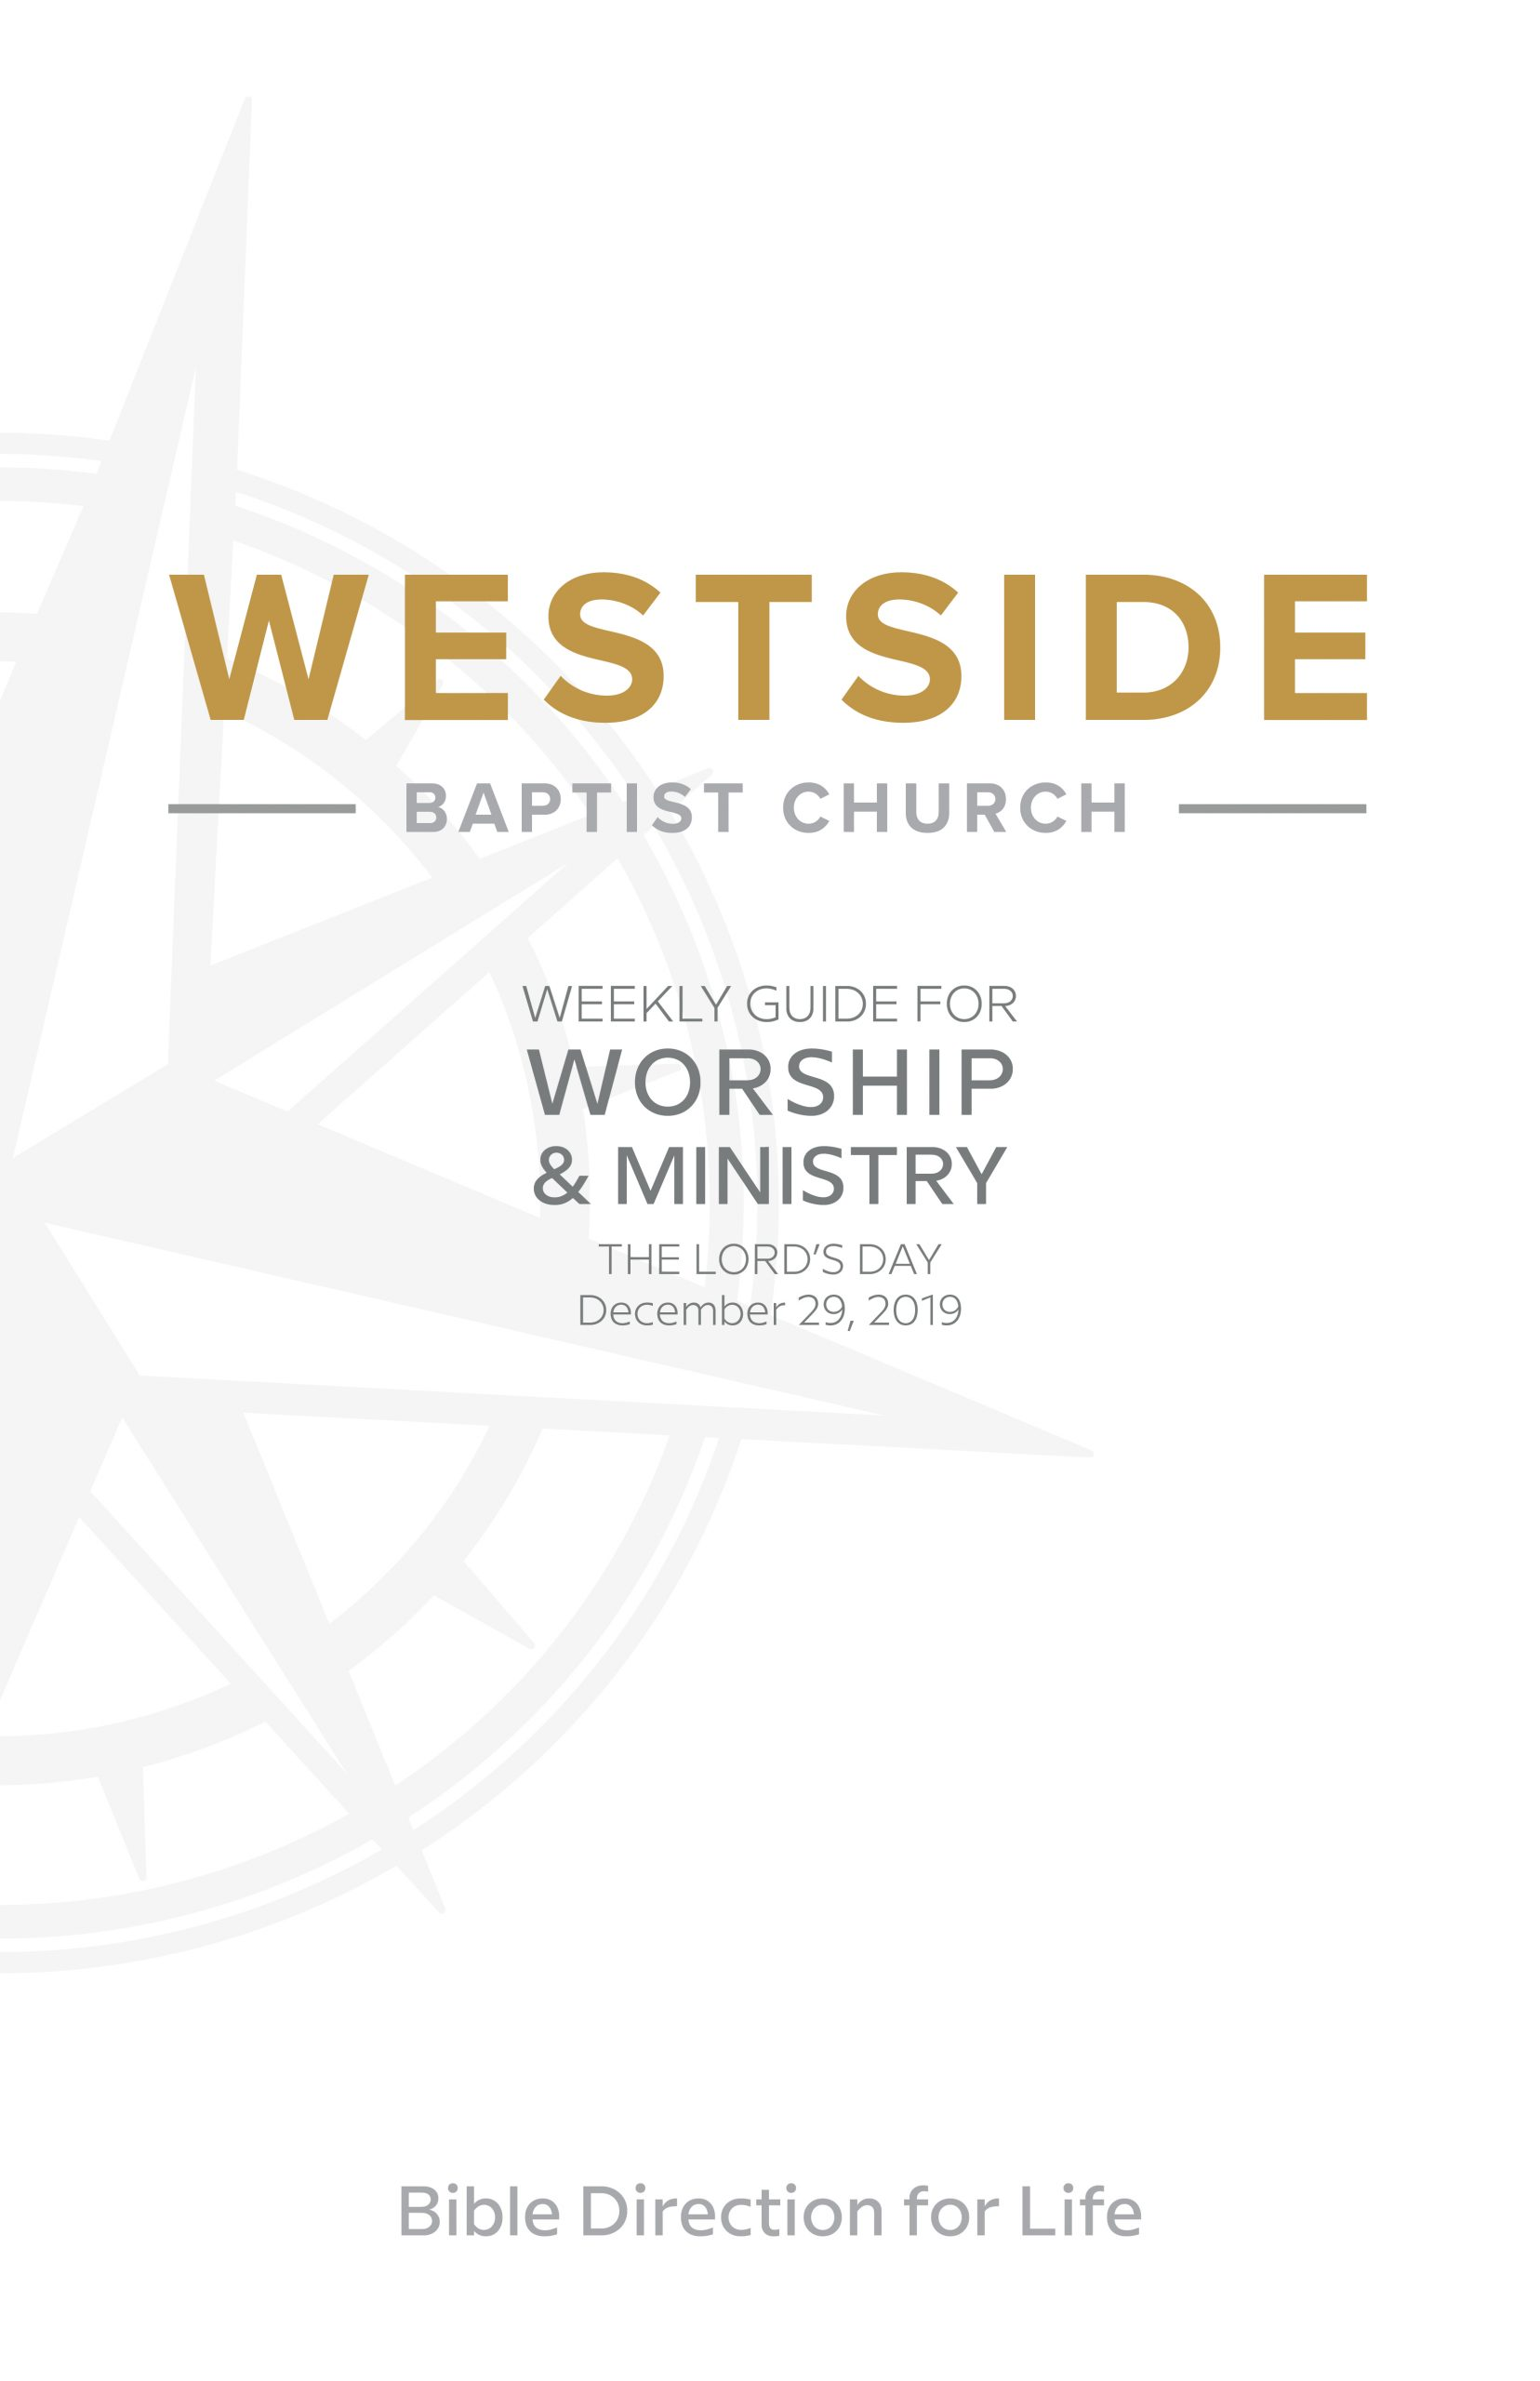 Weekly Guide for Worship and Ministry—December 29